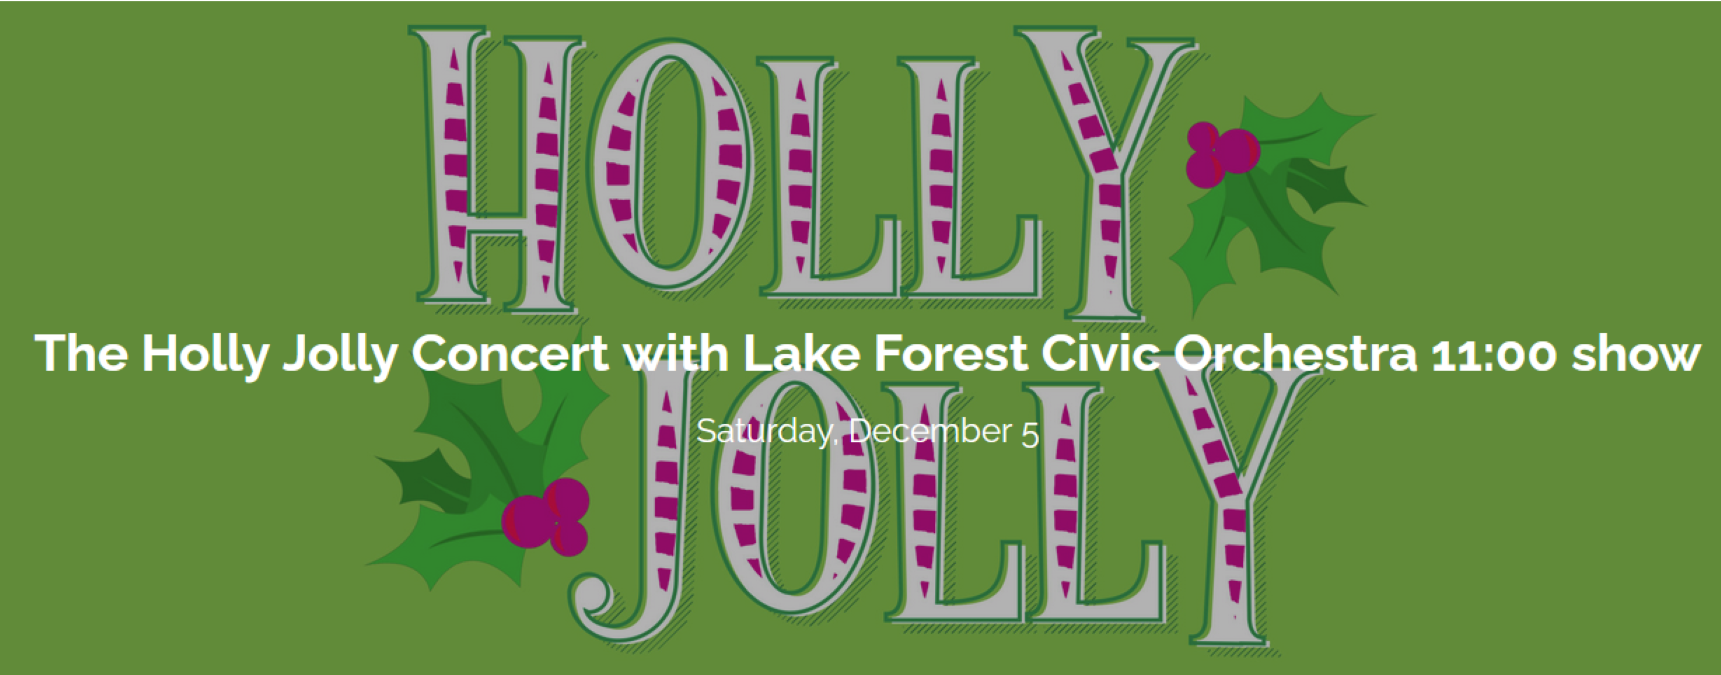 The Holly Jolly Concert with Lake Forest Civic Orchestra